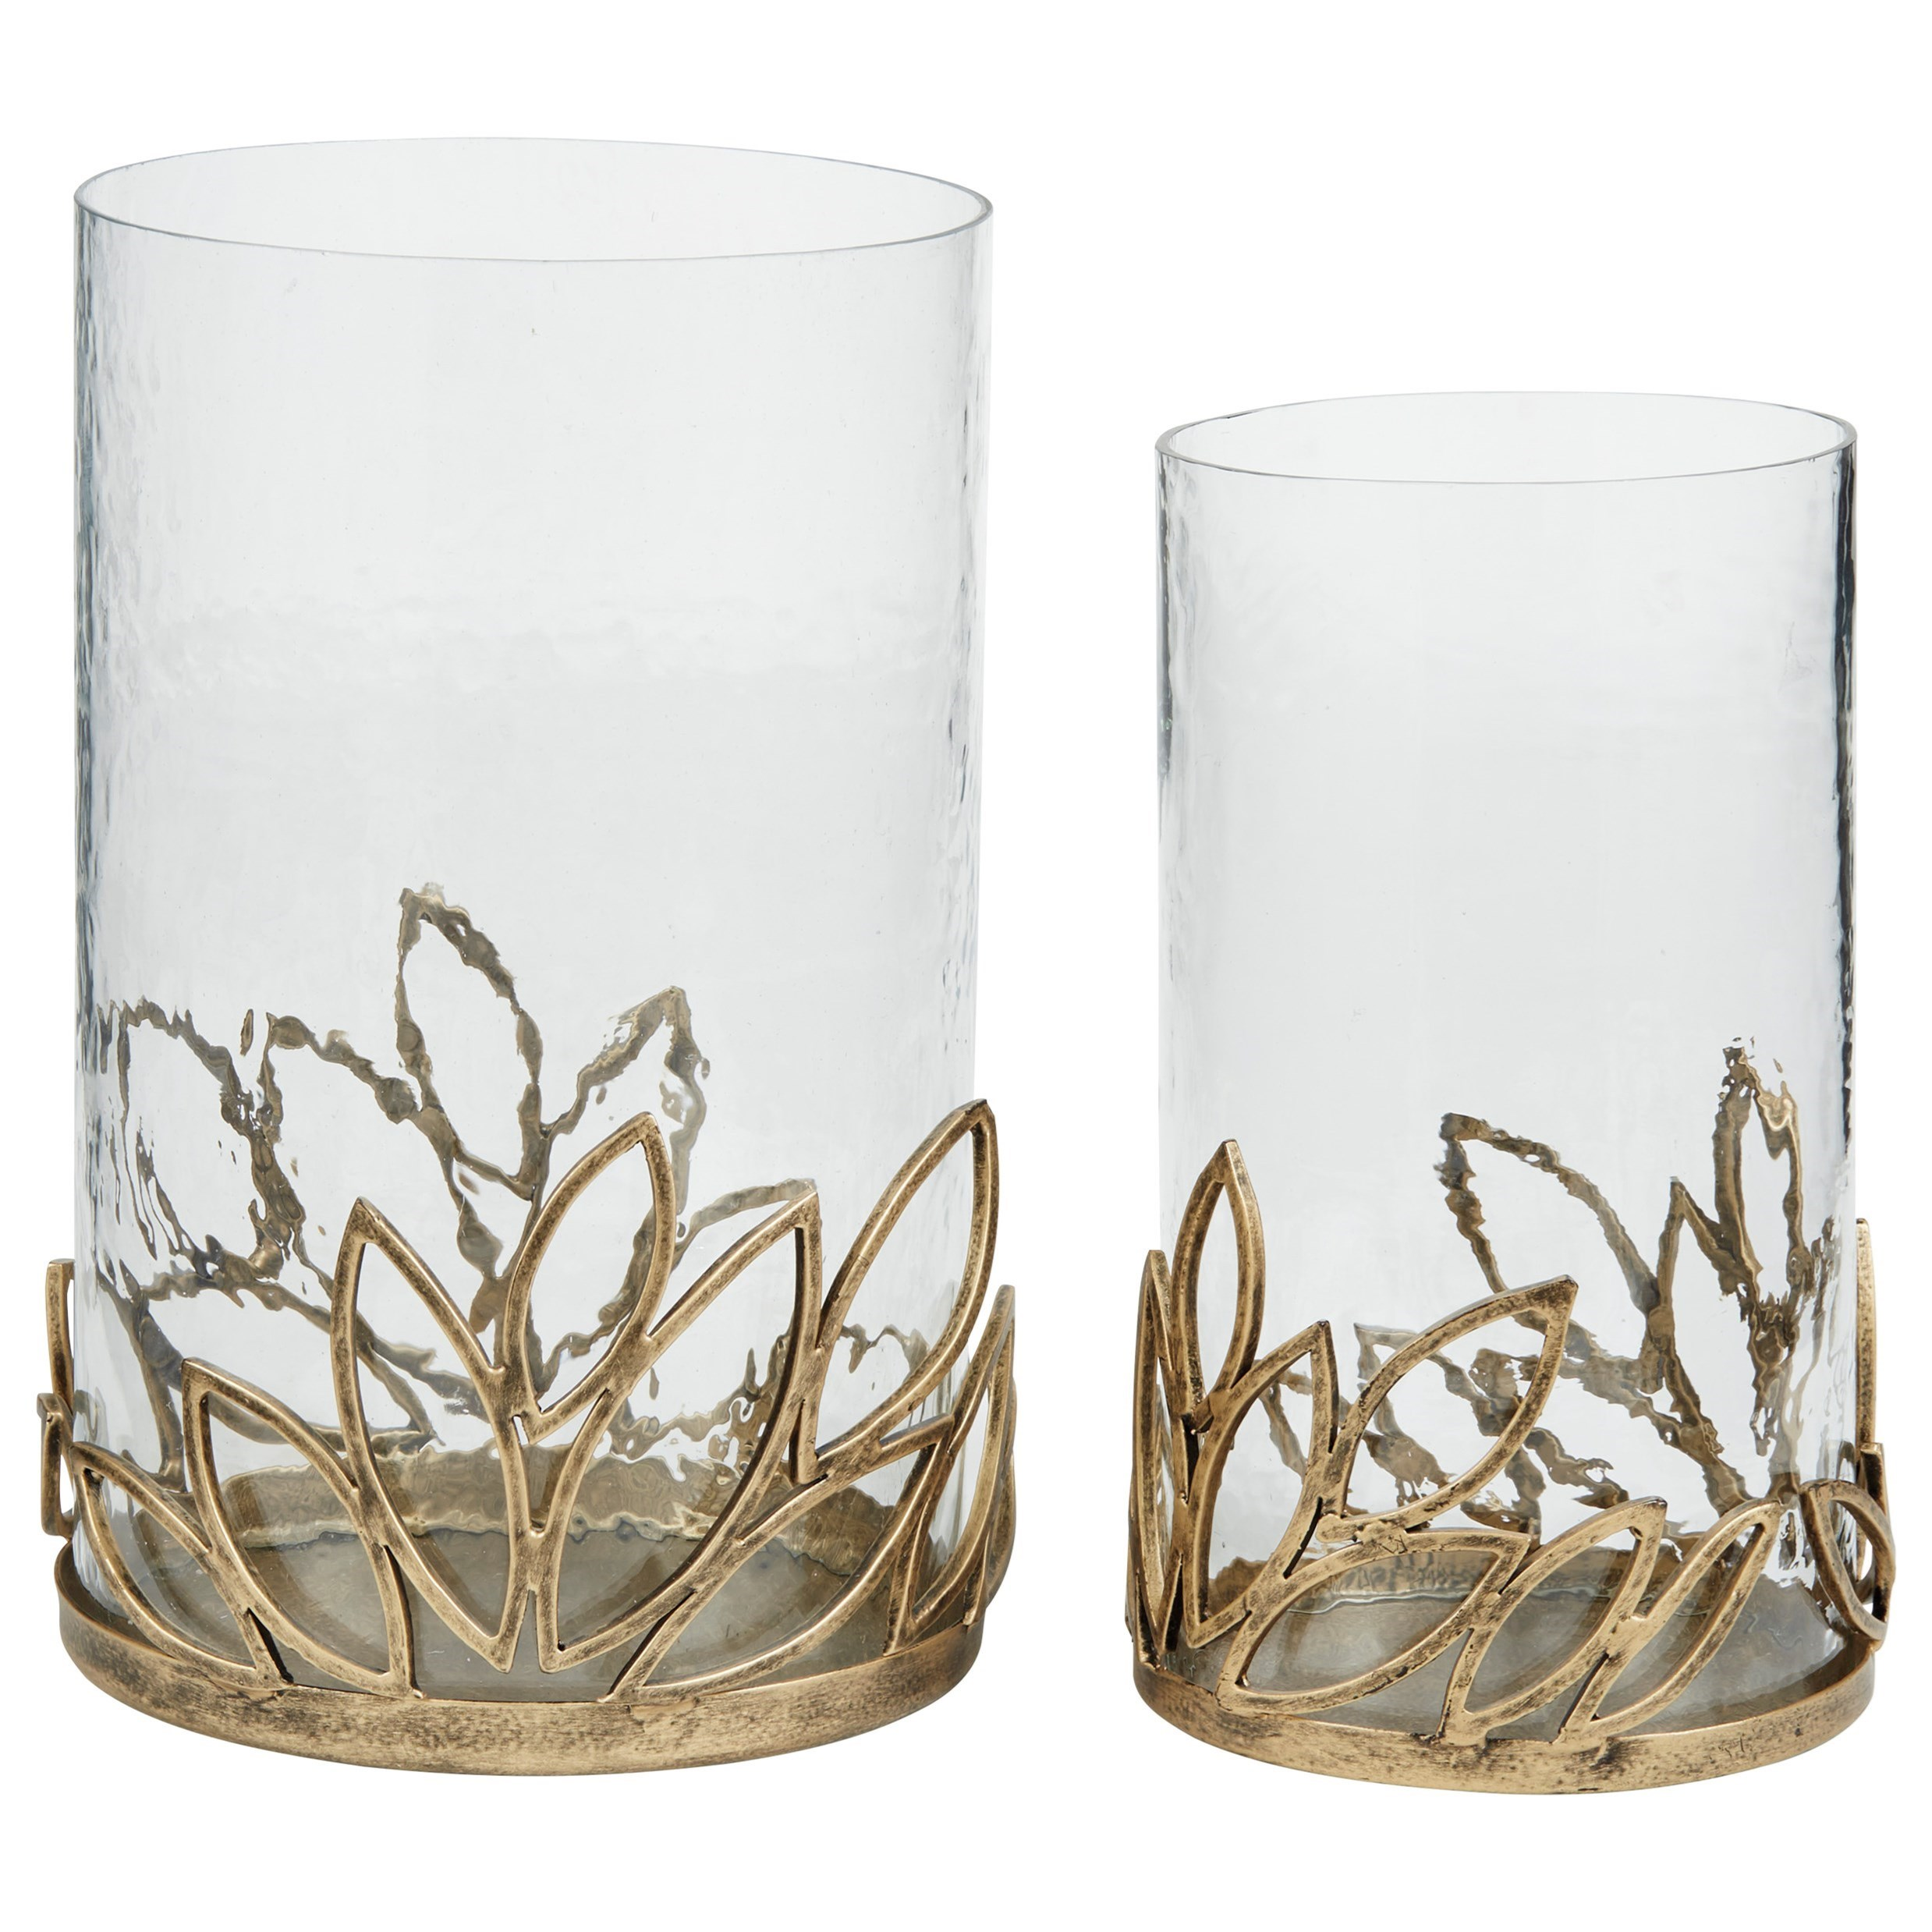 Accents Pascal Antique Gold Finish Candle Holder Set by Signature Design by Ashley at Sparks HomeStore